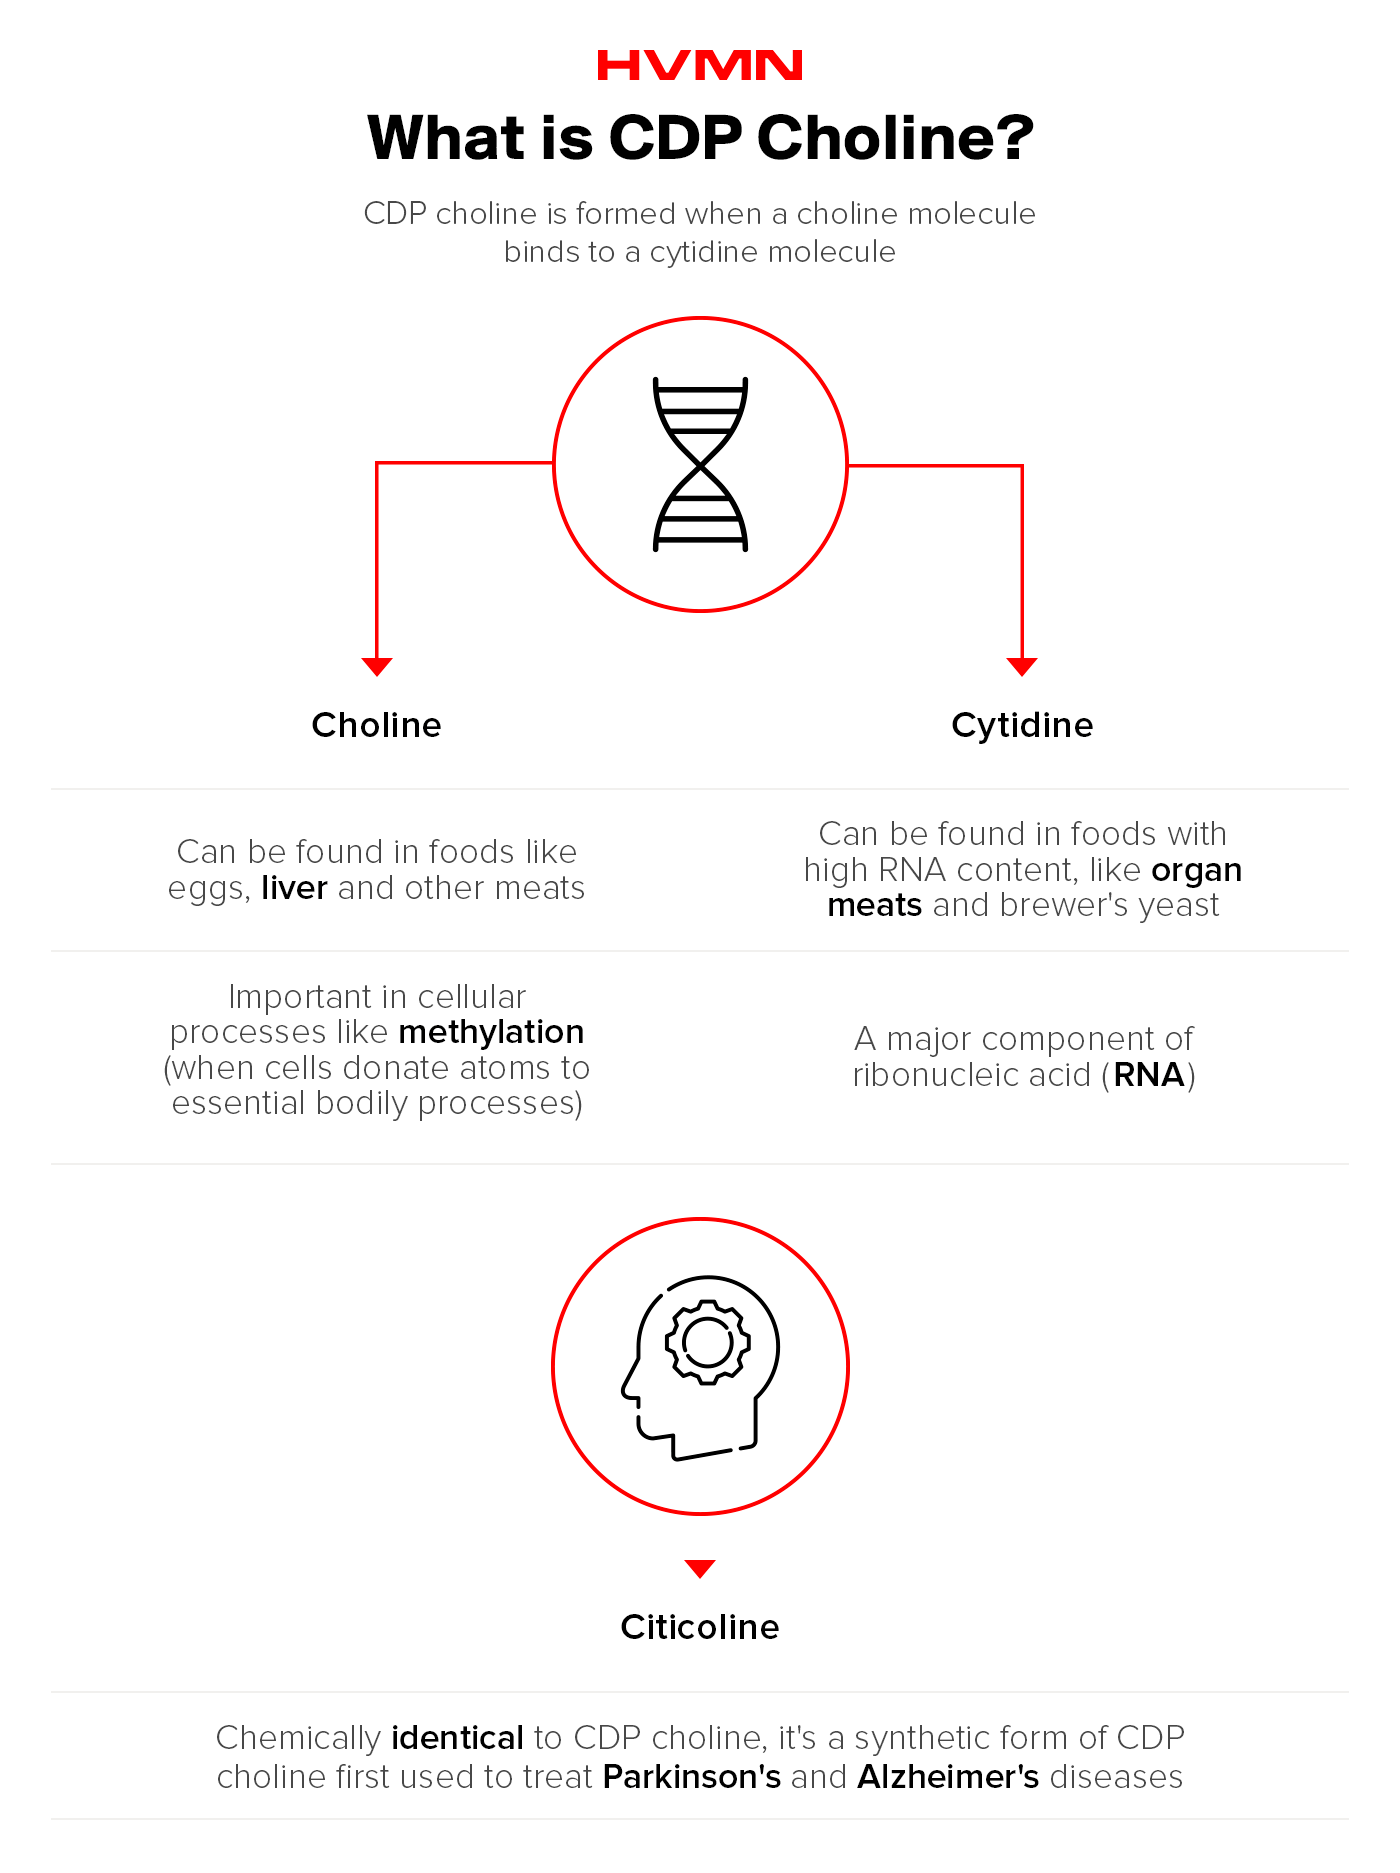 An illustration of a DNA strand, showing what CDP choline is, and how it become citicoline